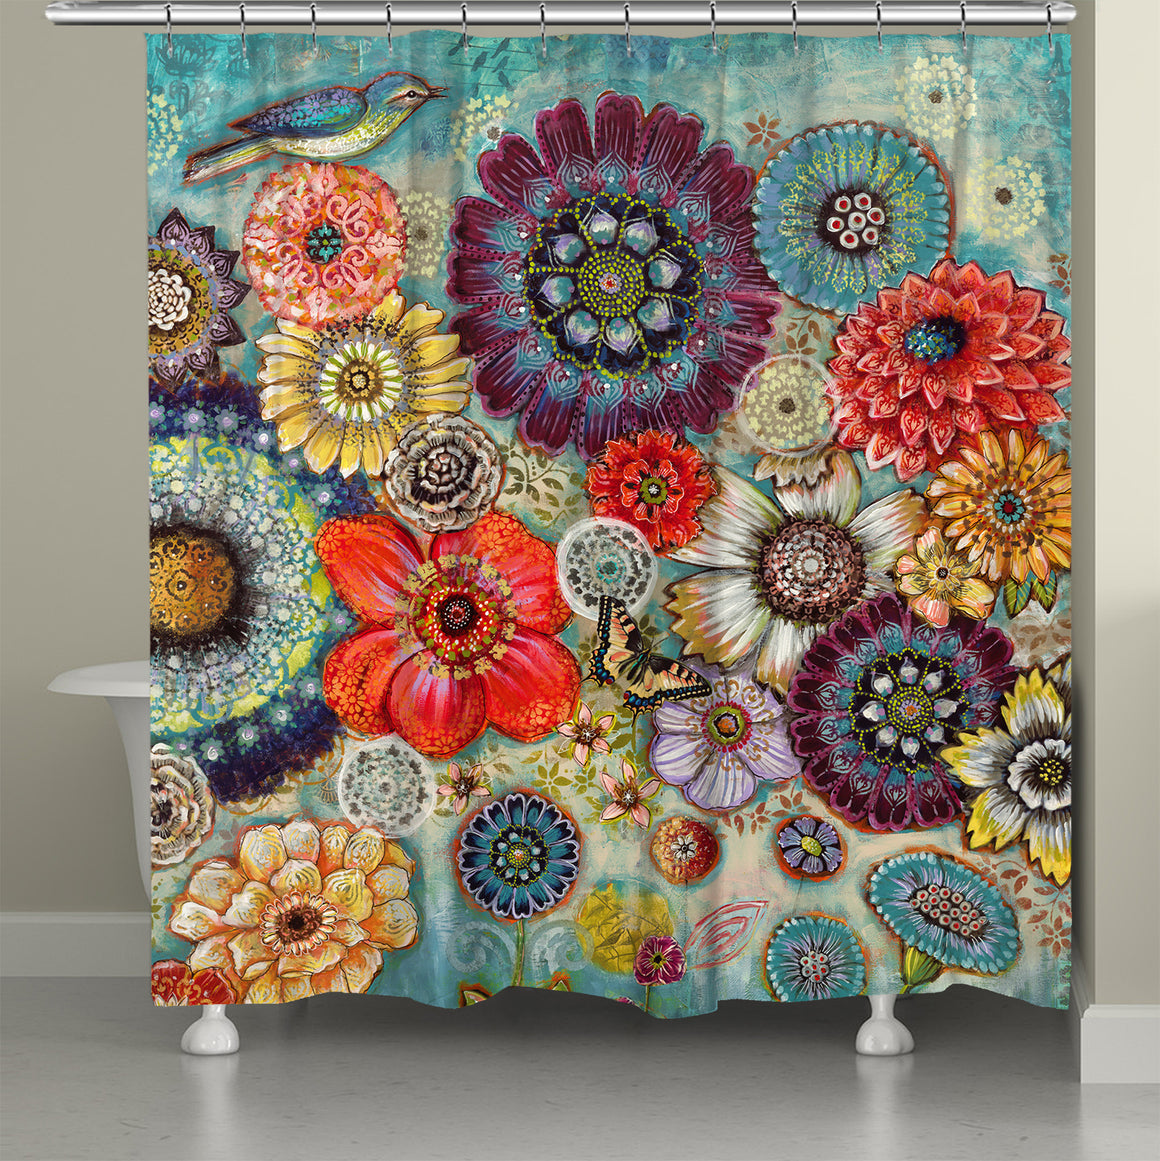 Blue Bird Boho Shower Curtain